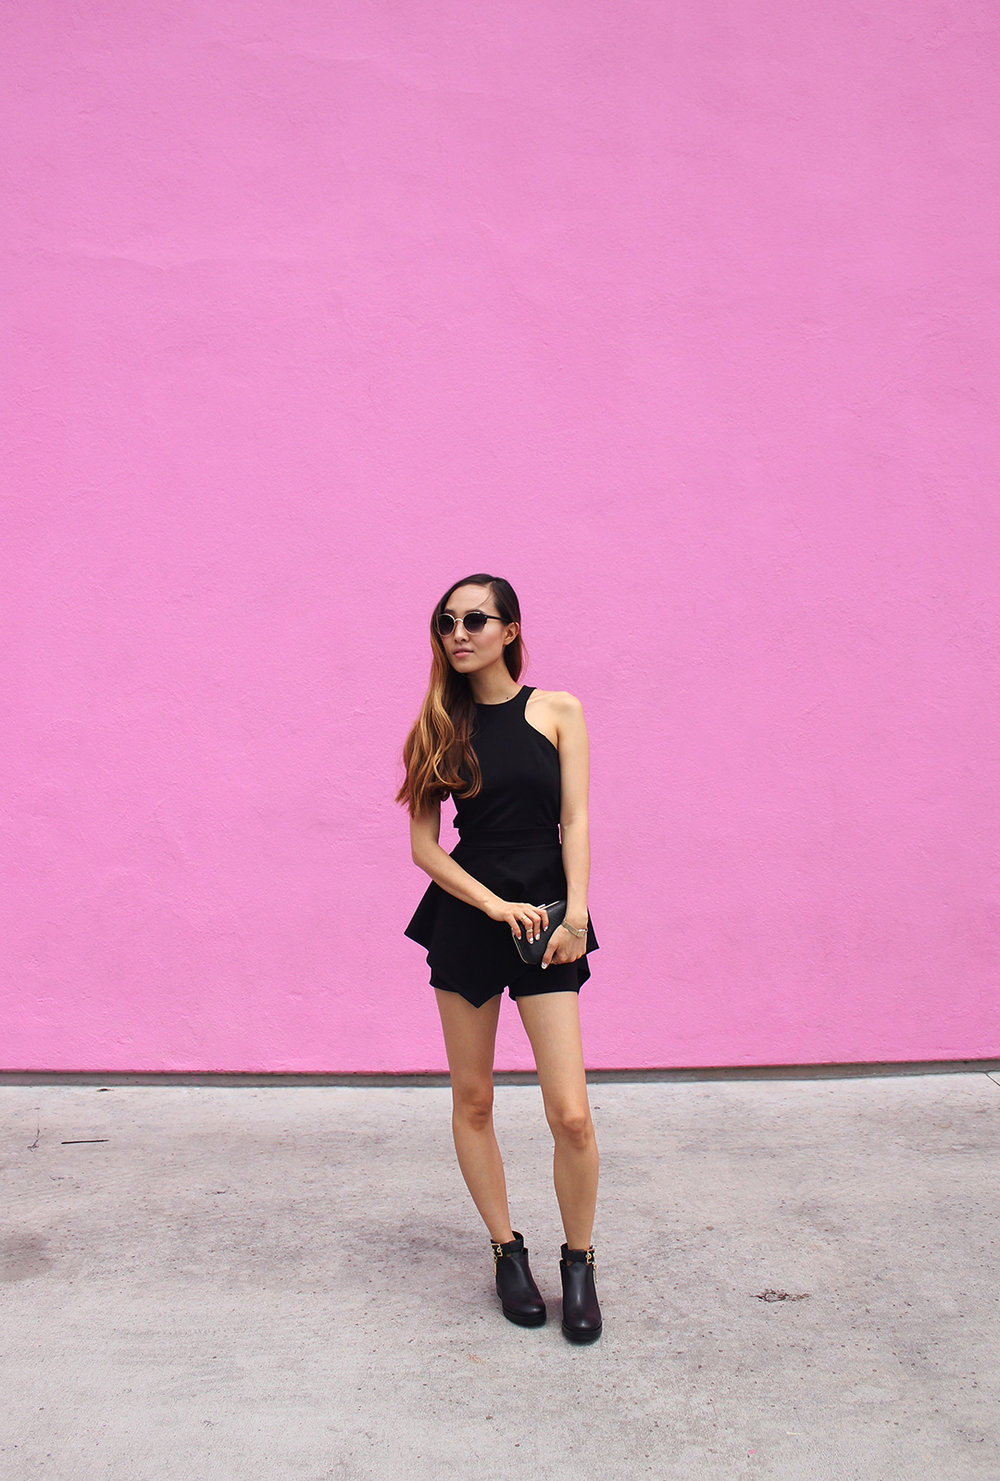 At the pink Paul Smith store wearing a romper by Nasty Gal, booties by Zara, and sunglasses by Urban Outfitters.